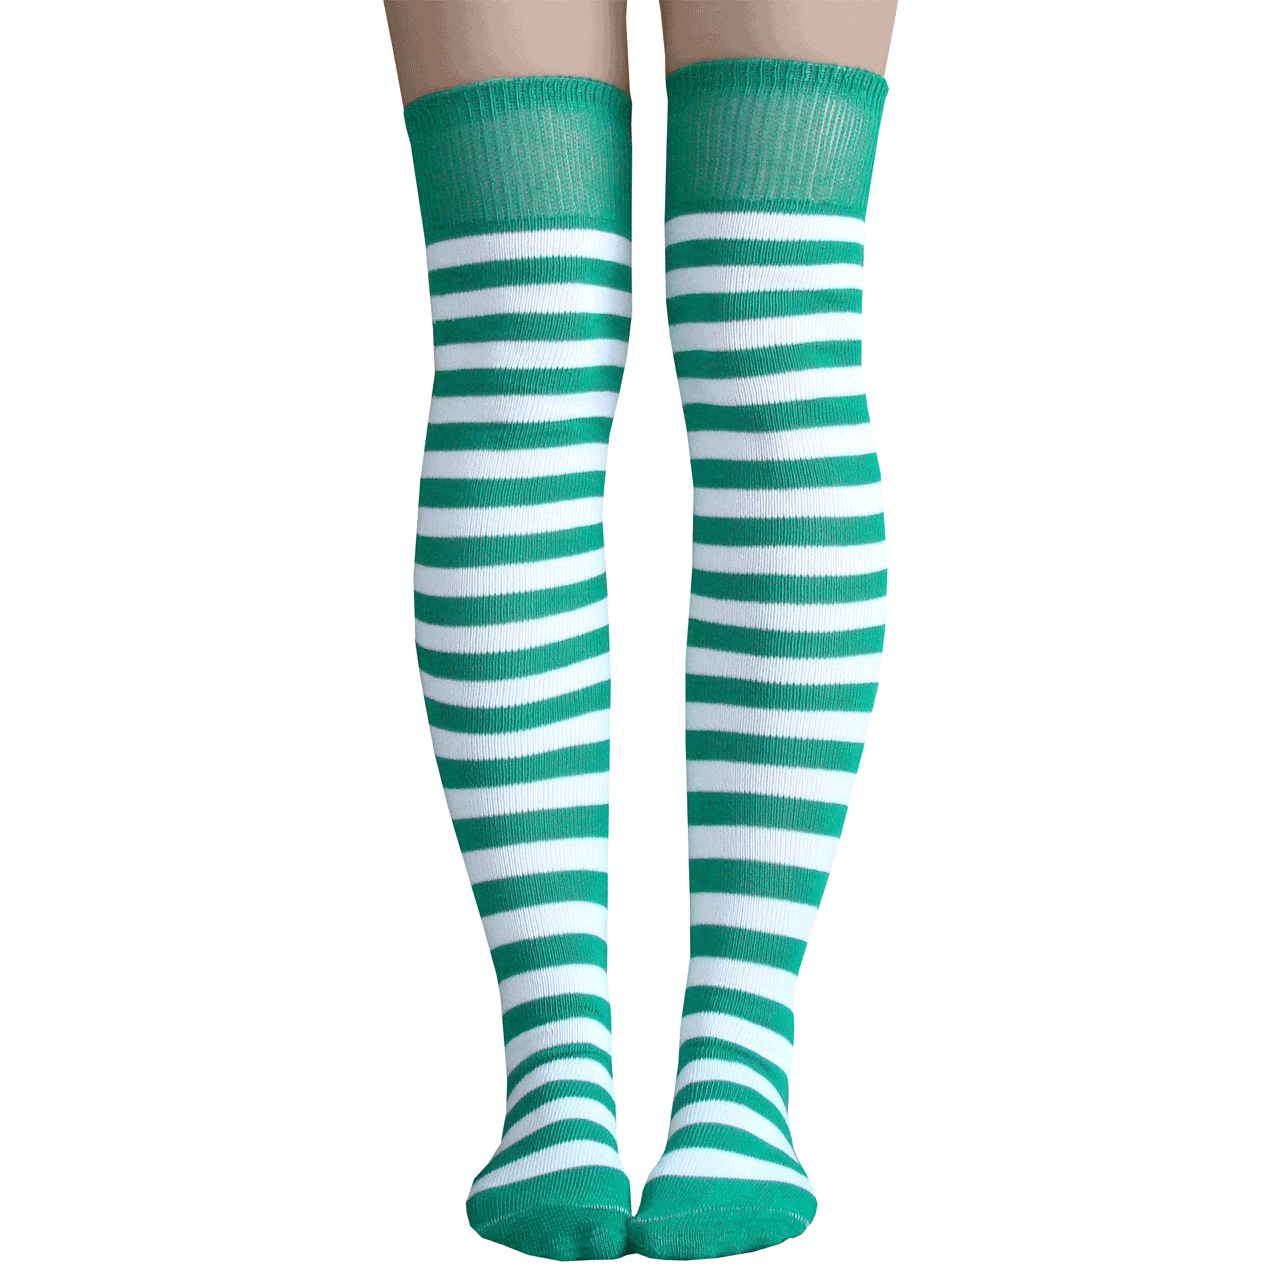 6959a2f0bcf Green   White Striped Knee Highs -over the knee with green and white stripes  - thigh high stockings that stay up your leg